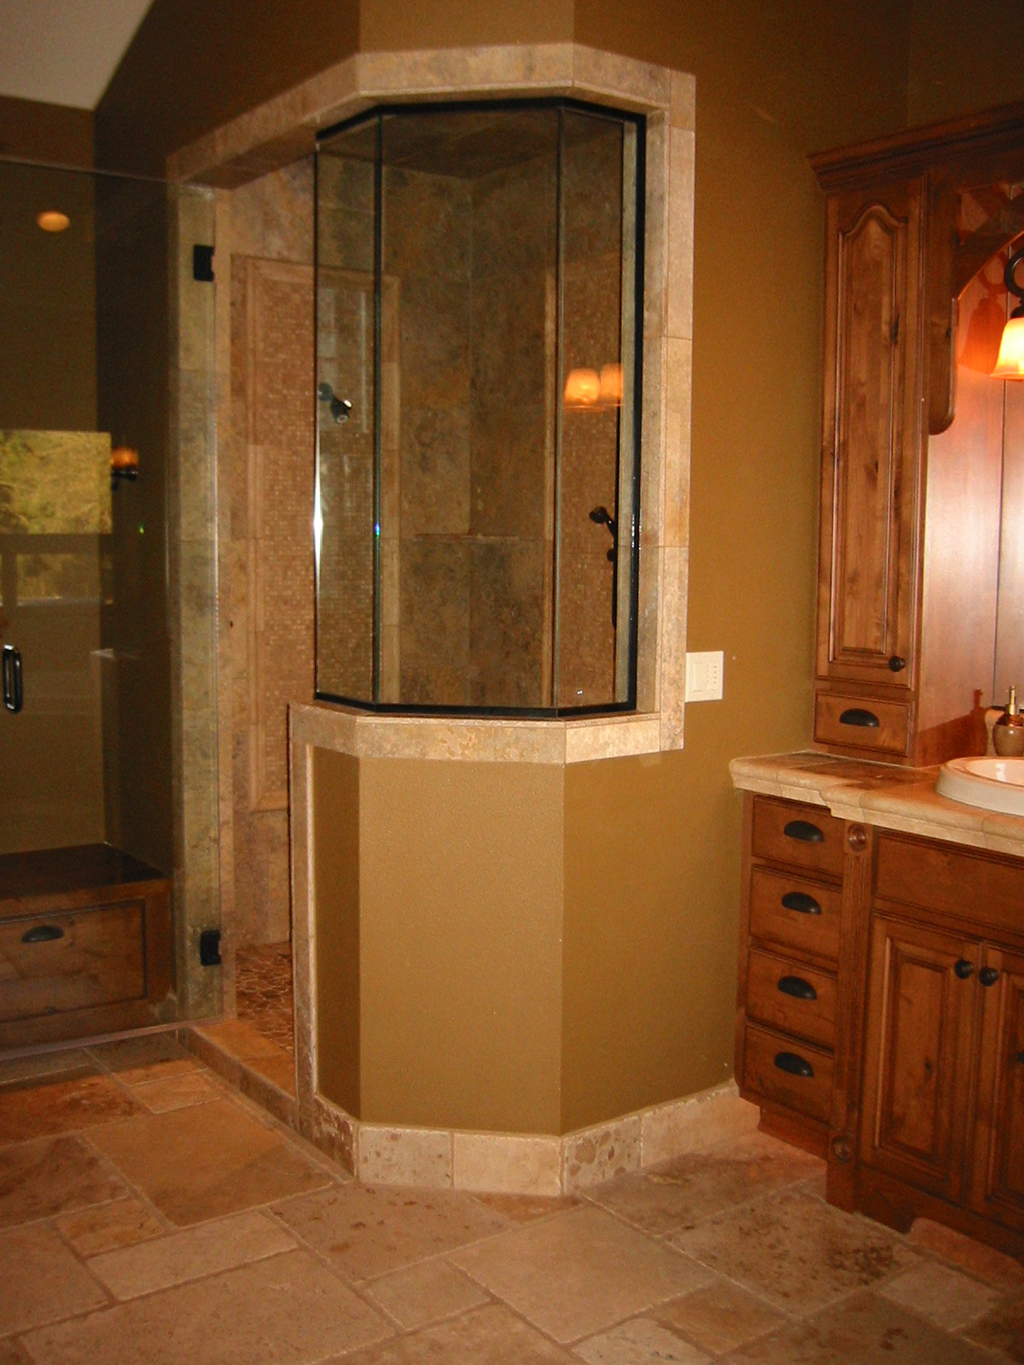 Home Construction & Remodel